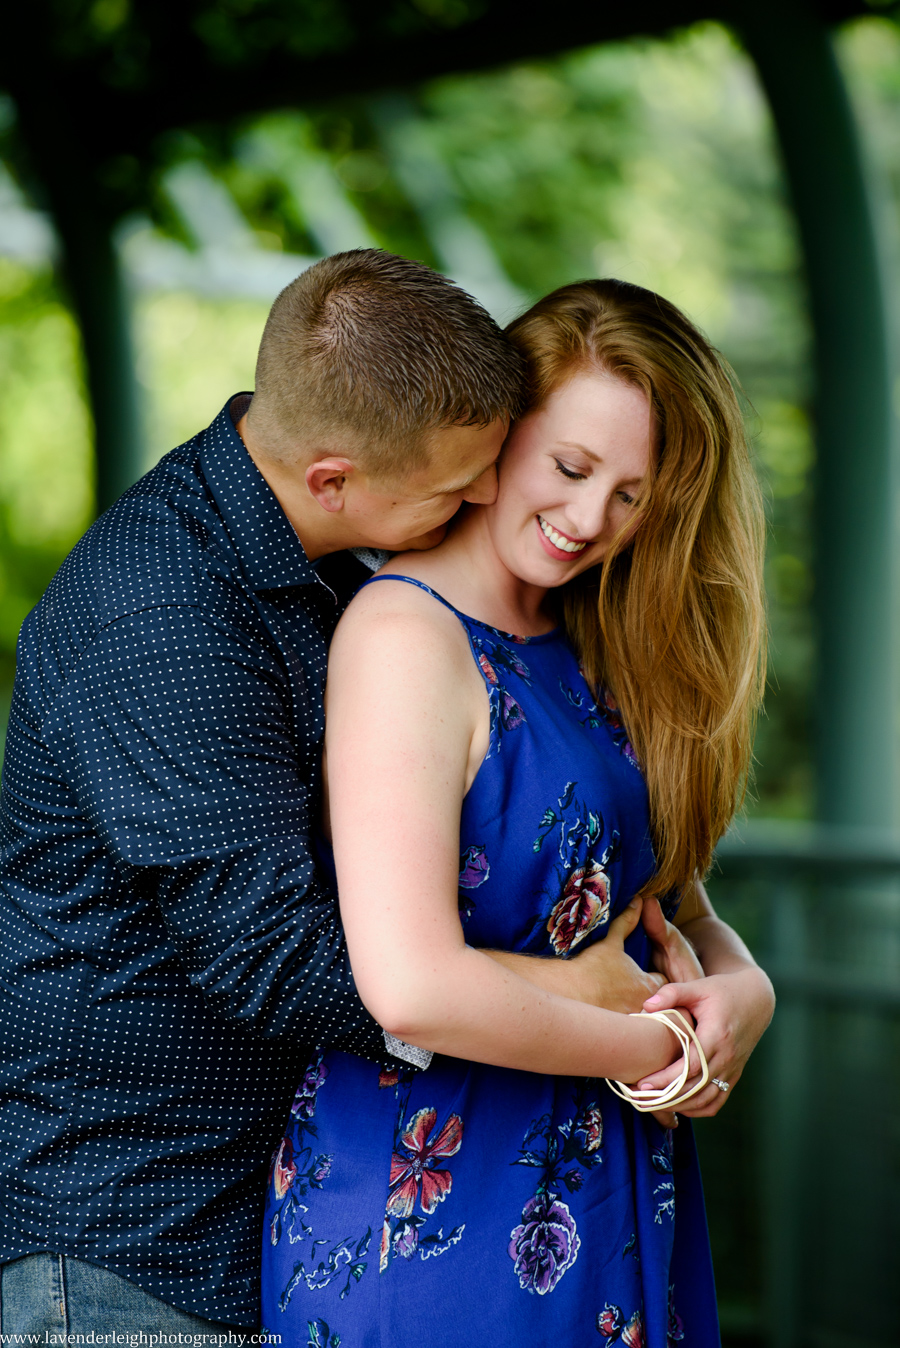 An engagement photography session on the West End Overlook in Pittsburgh, PA.